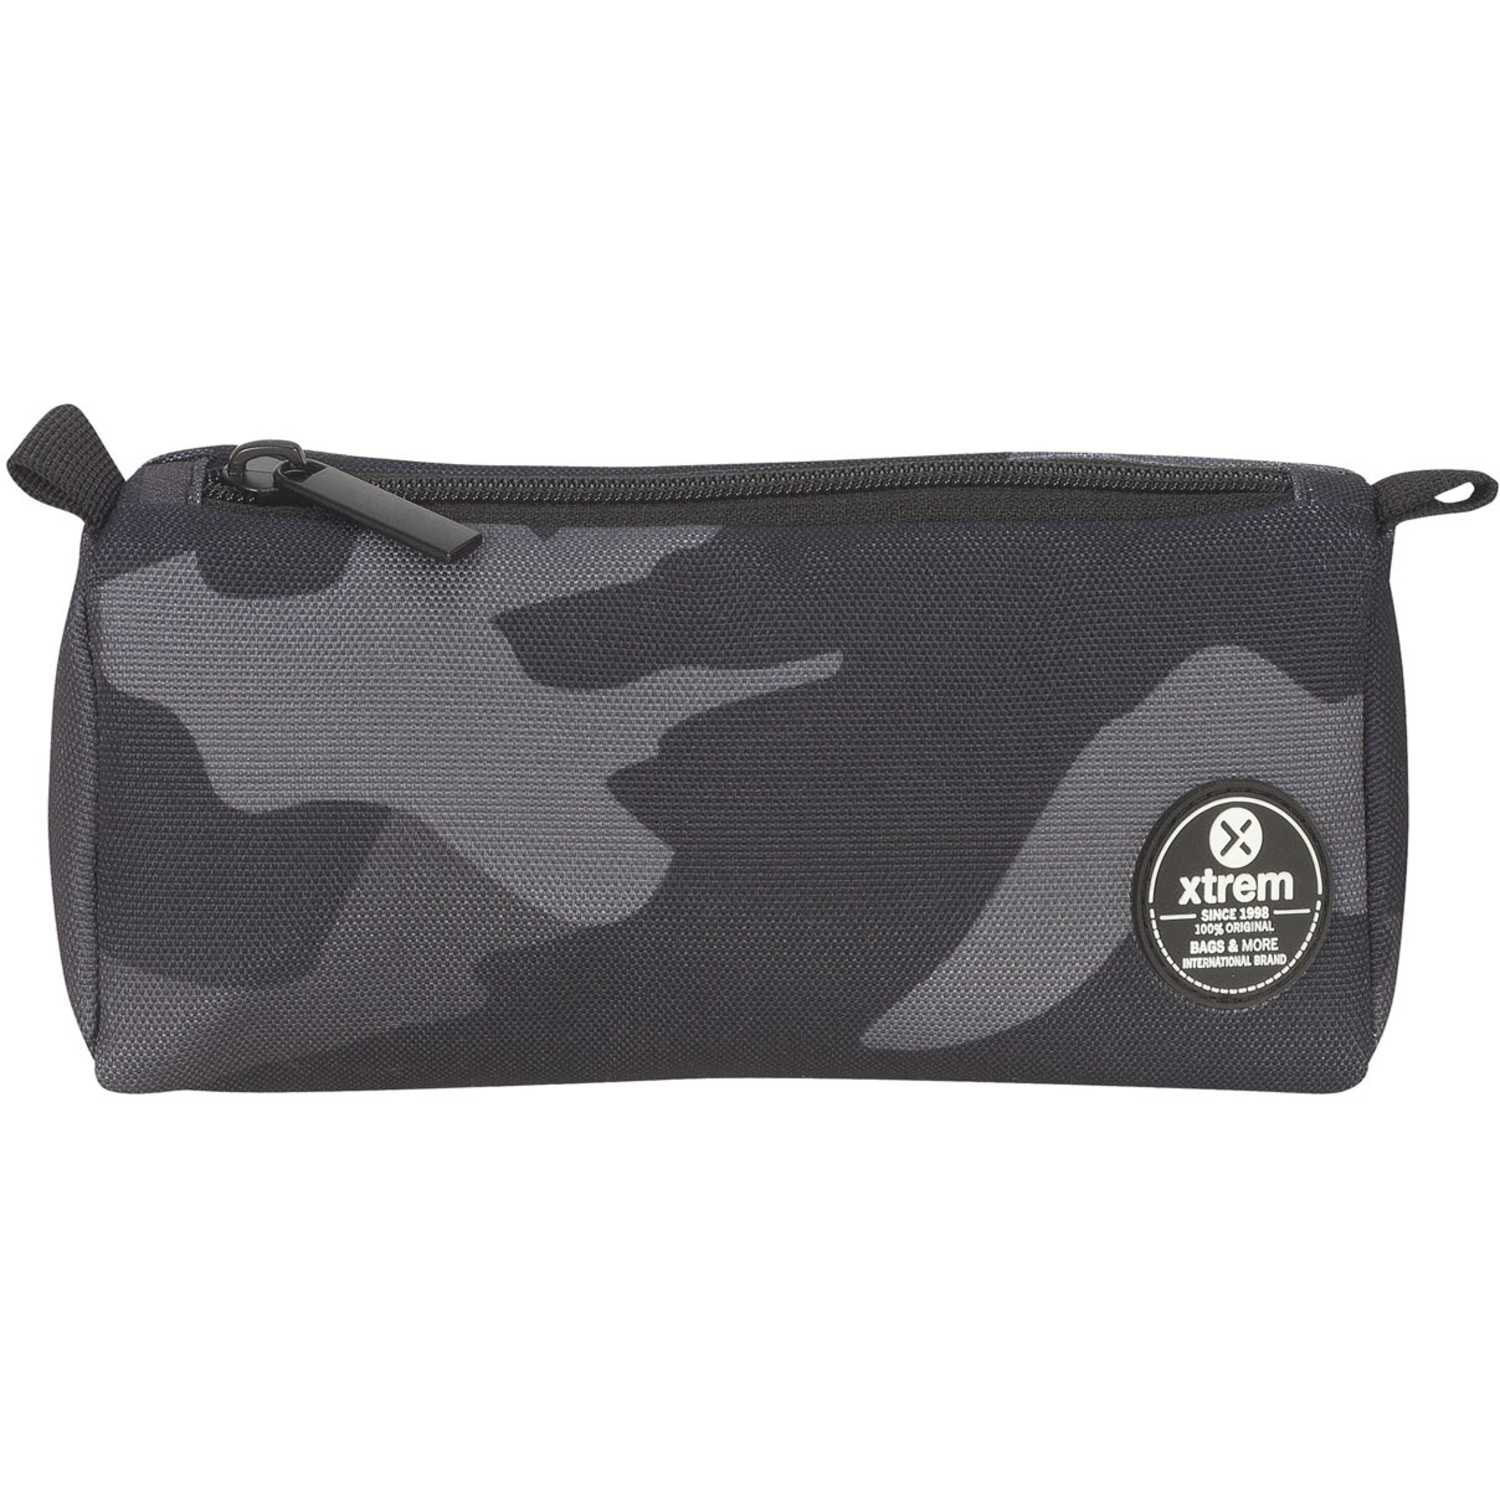 Cartuchera de Niño Xtrem Camuflado pencil box black camouflage crush 843